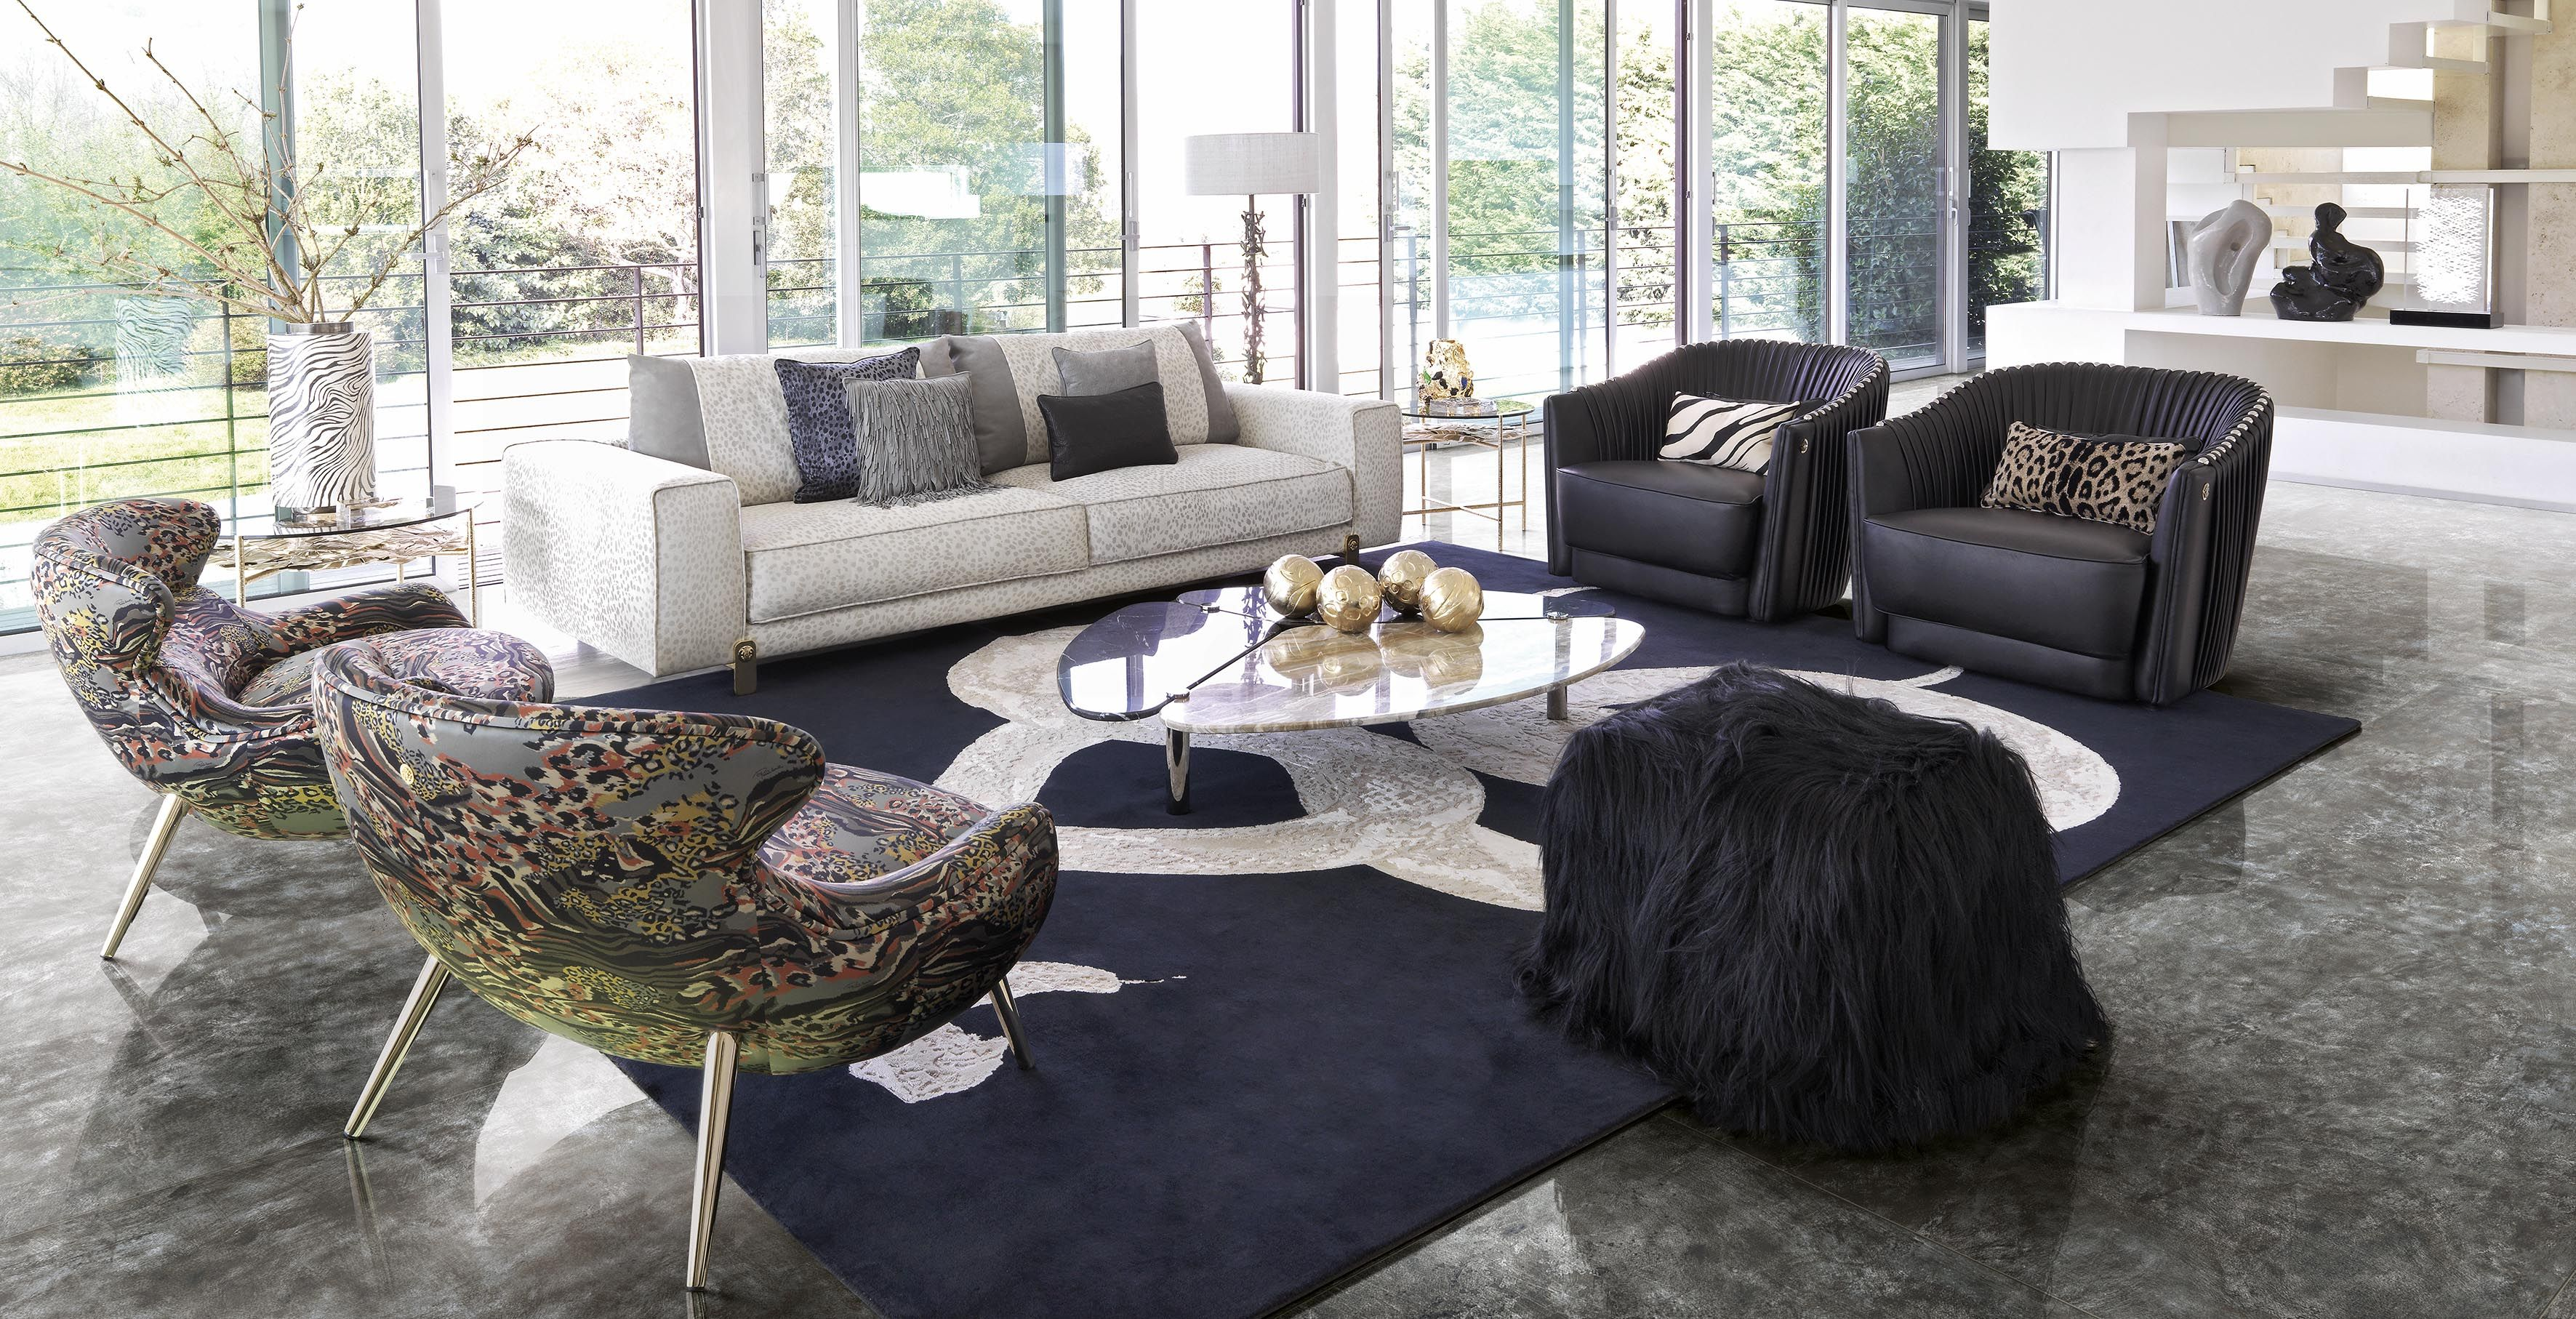 Living Room Featuring All Roberto Cavalli Home Interiors Furniture